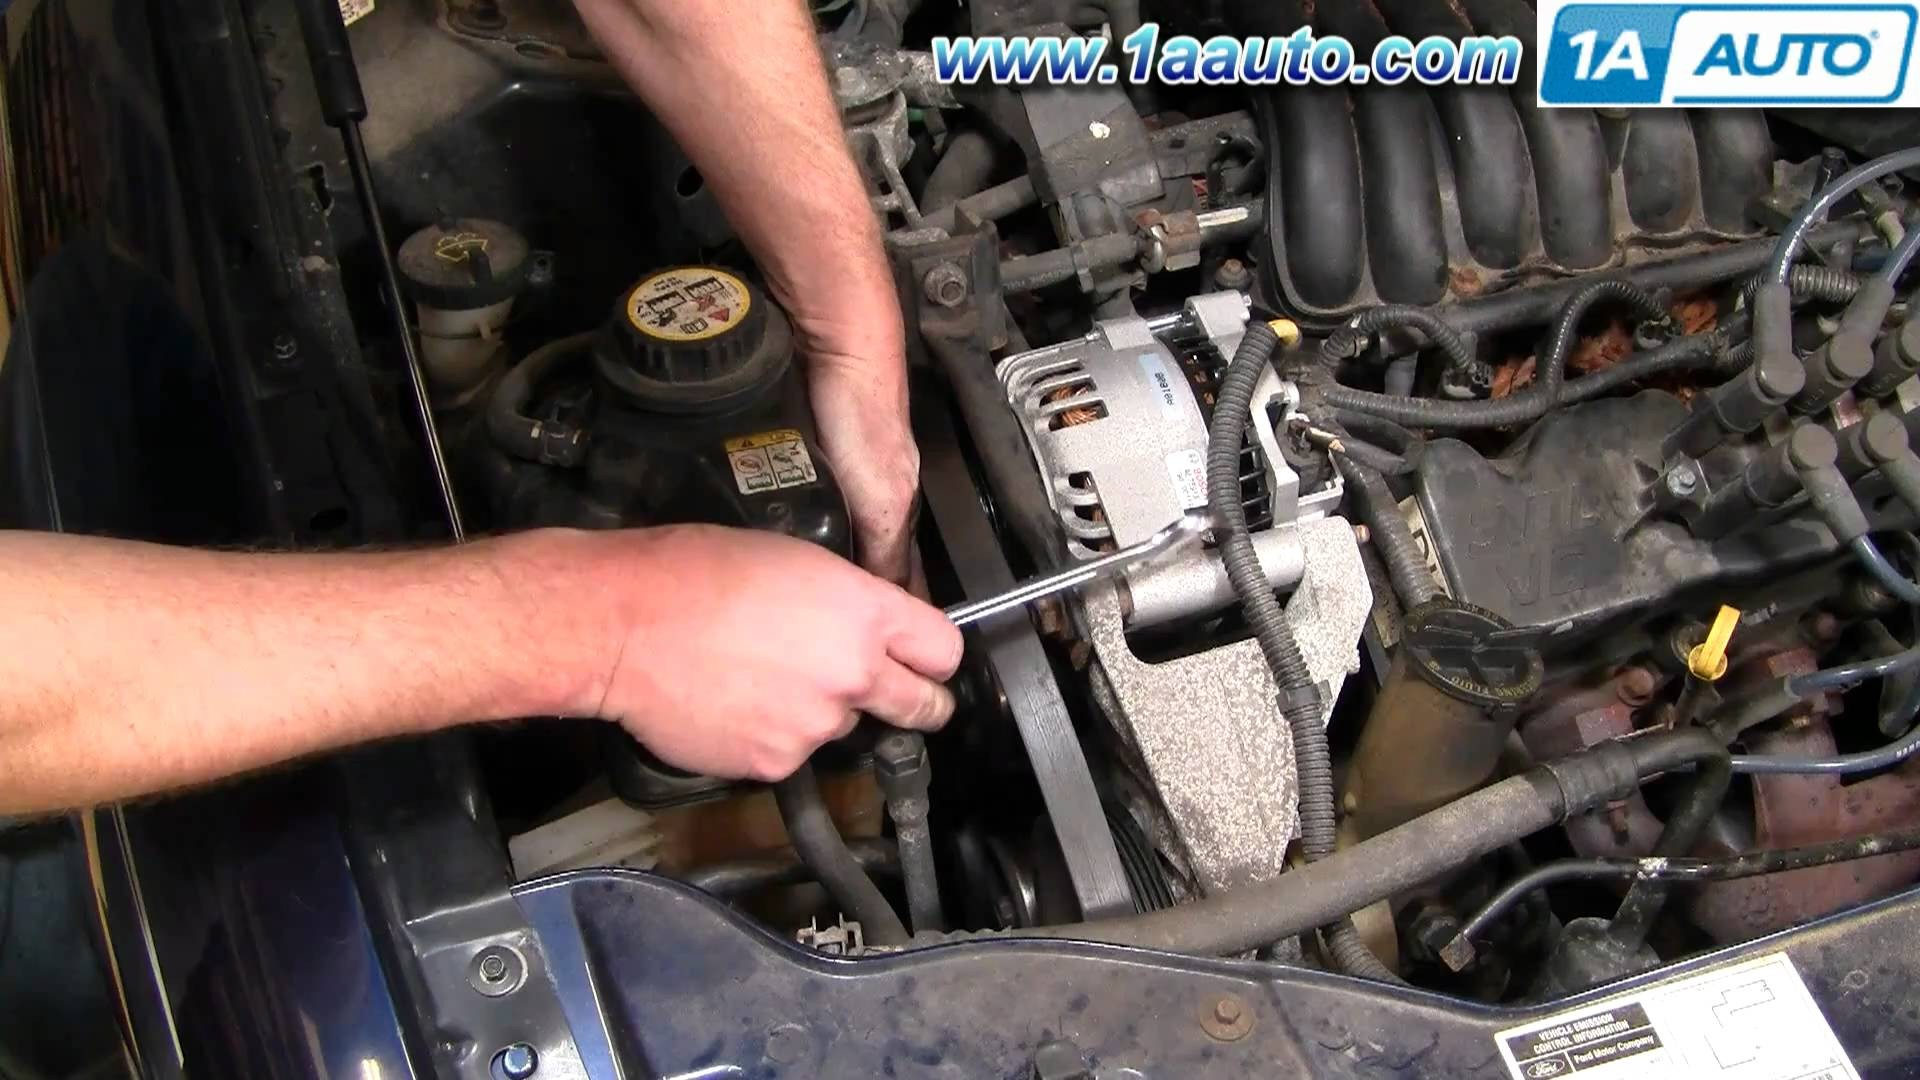 1999 Mercury Cougar Engine Diagram How to Install Replace Serpentine Belt  Idler Pulley ford Taurus 3